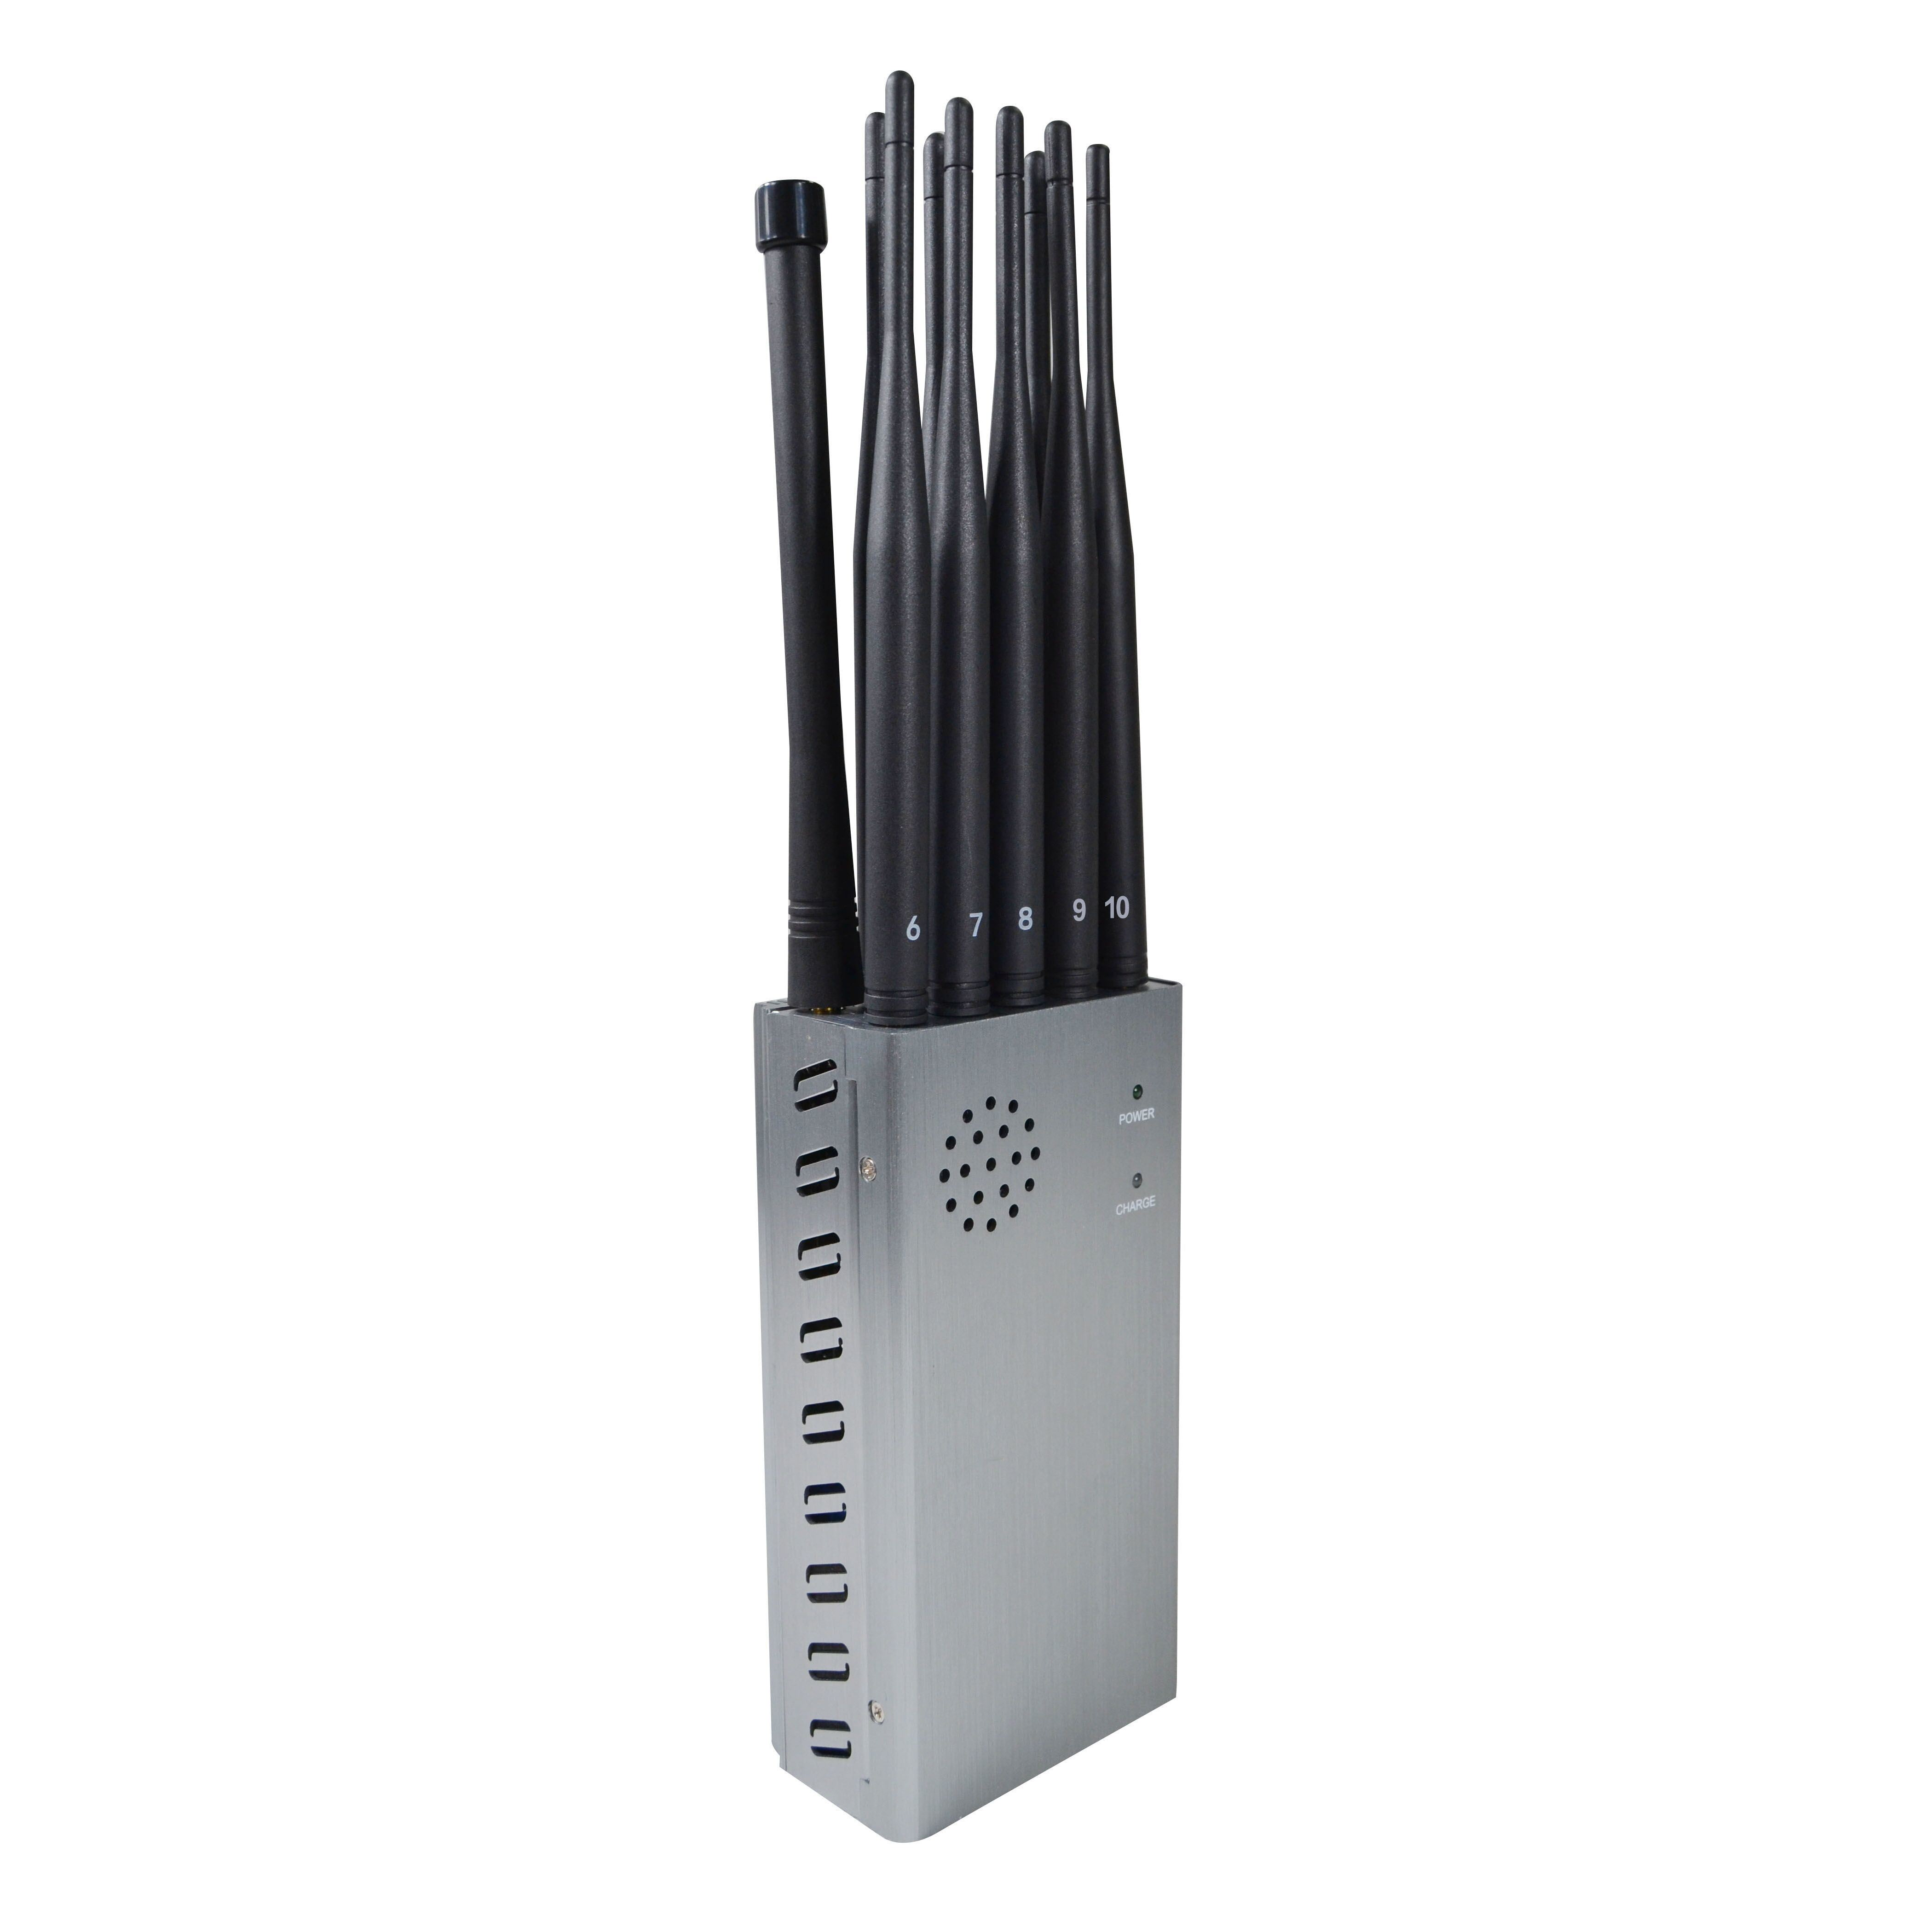 China High Power with 8000mA Battery Portable Jammers with Full Band 10 Antennas Including 2g 3G 4G WiFi GPS Lojack 5g and Remote Control Jammer - China Mobile Phone Jammer, Full Band Signal Blockers